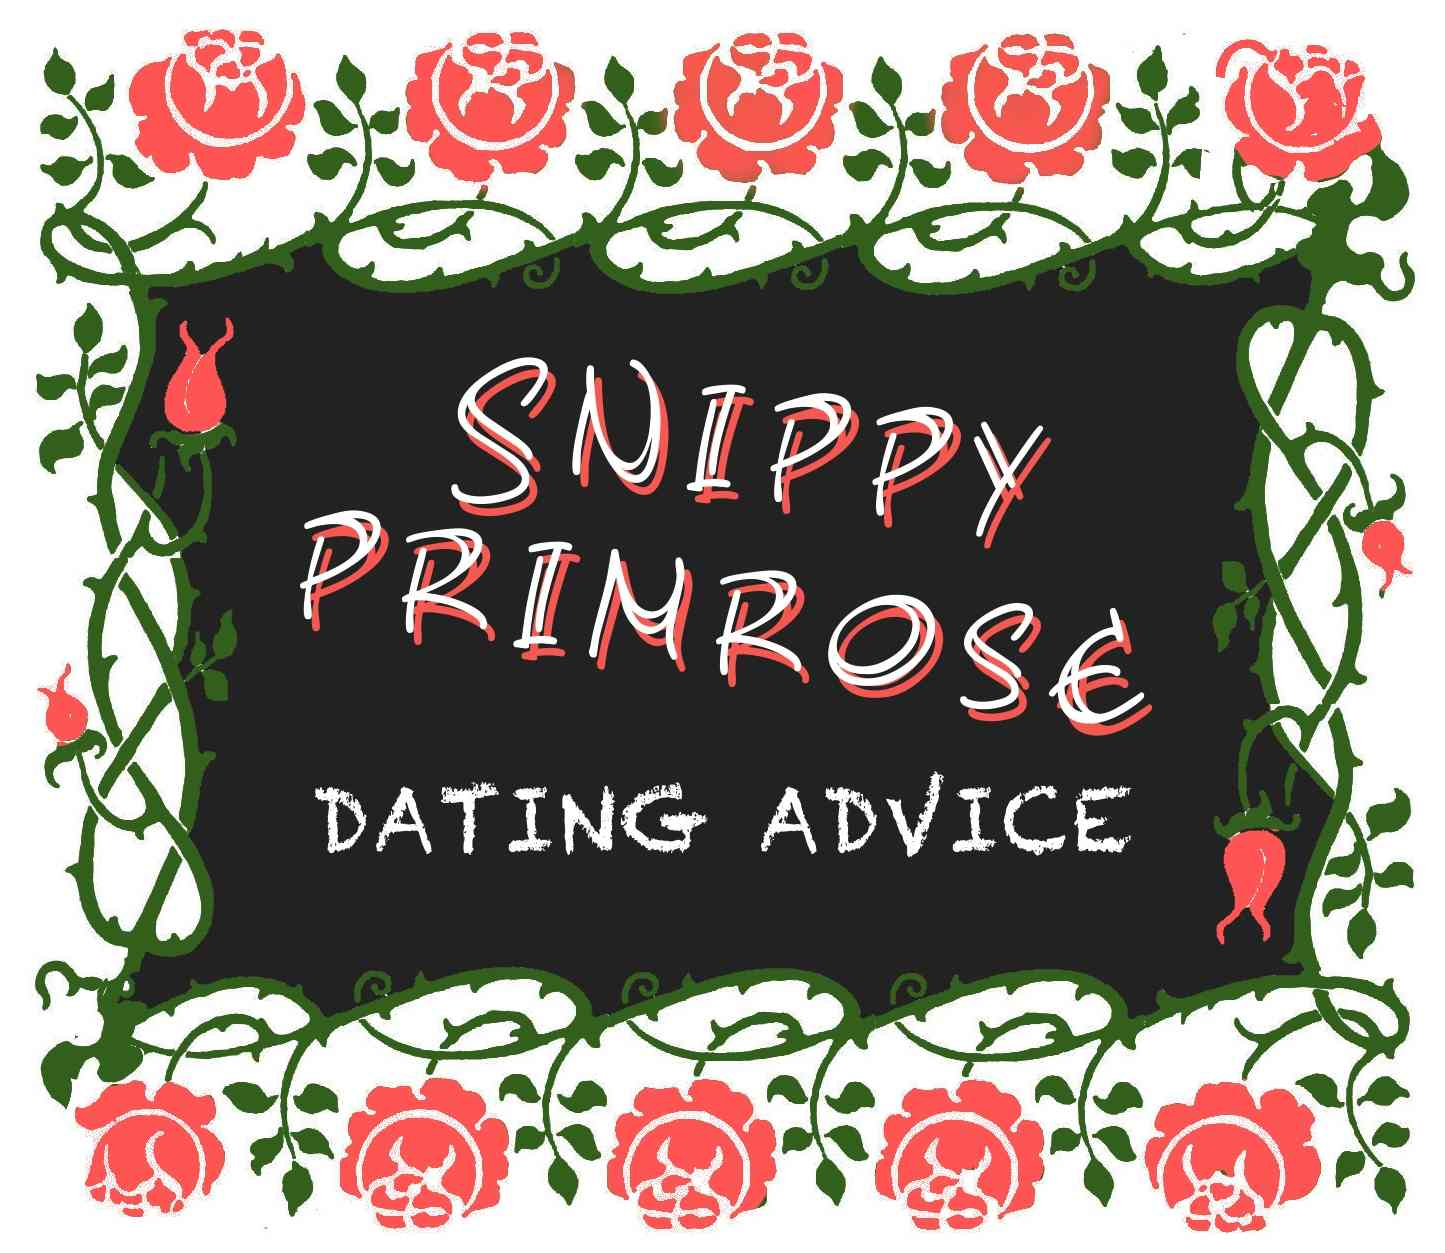 thrilling grief comedy blog, snippy primrose